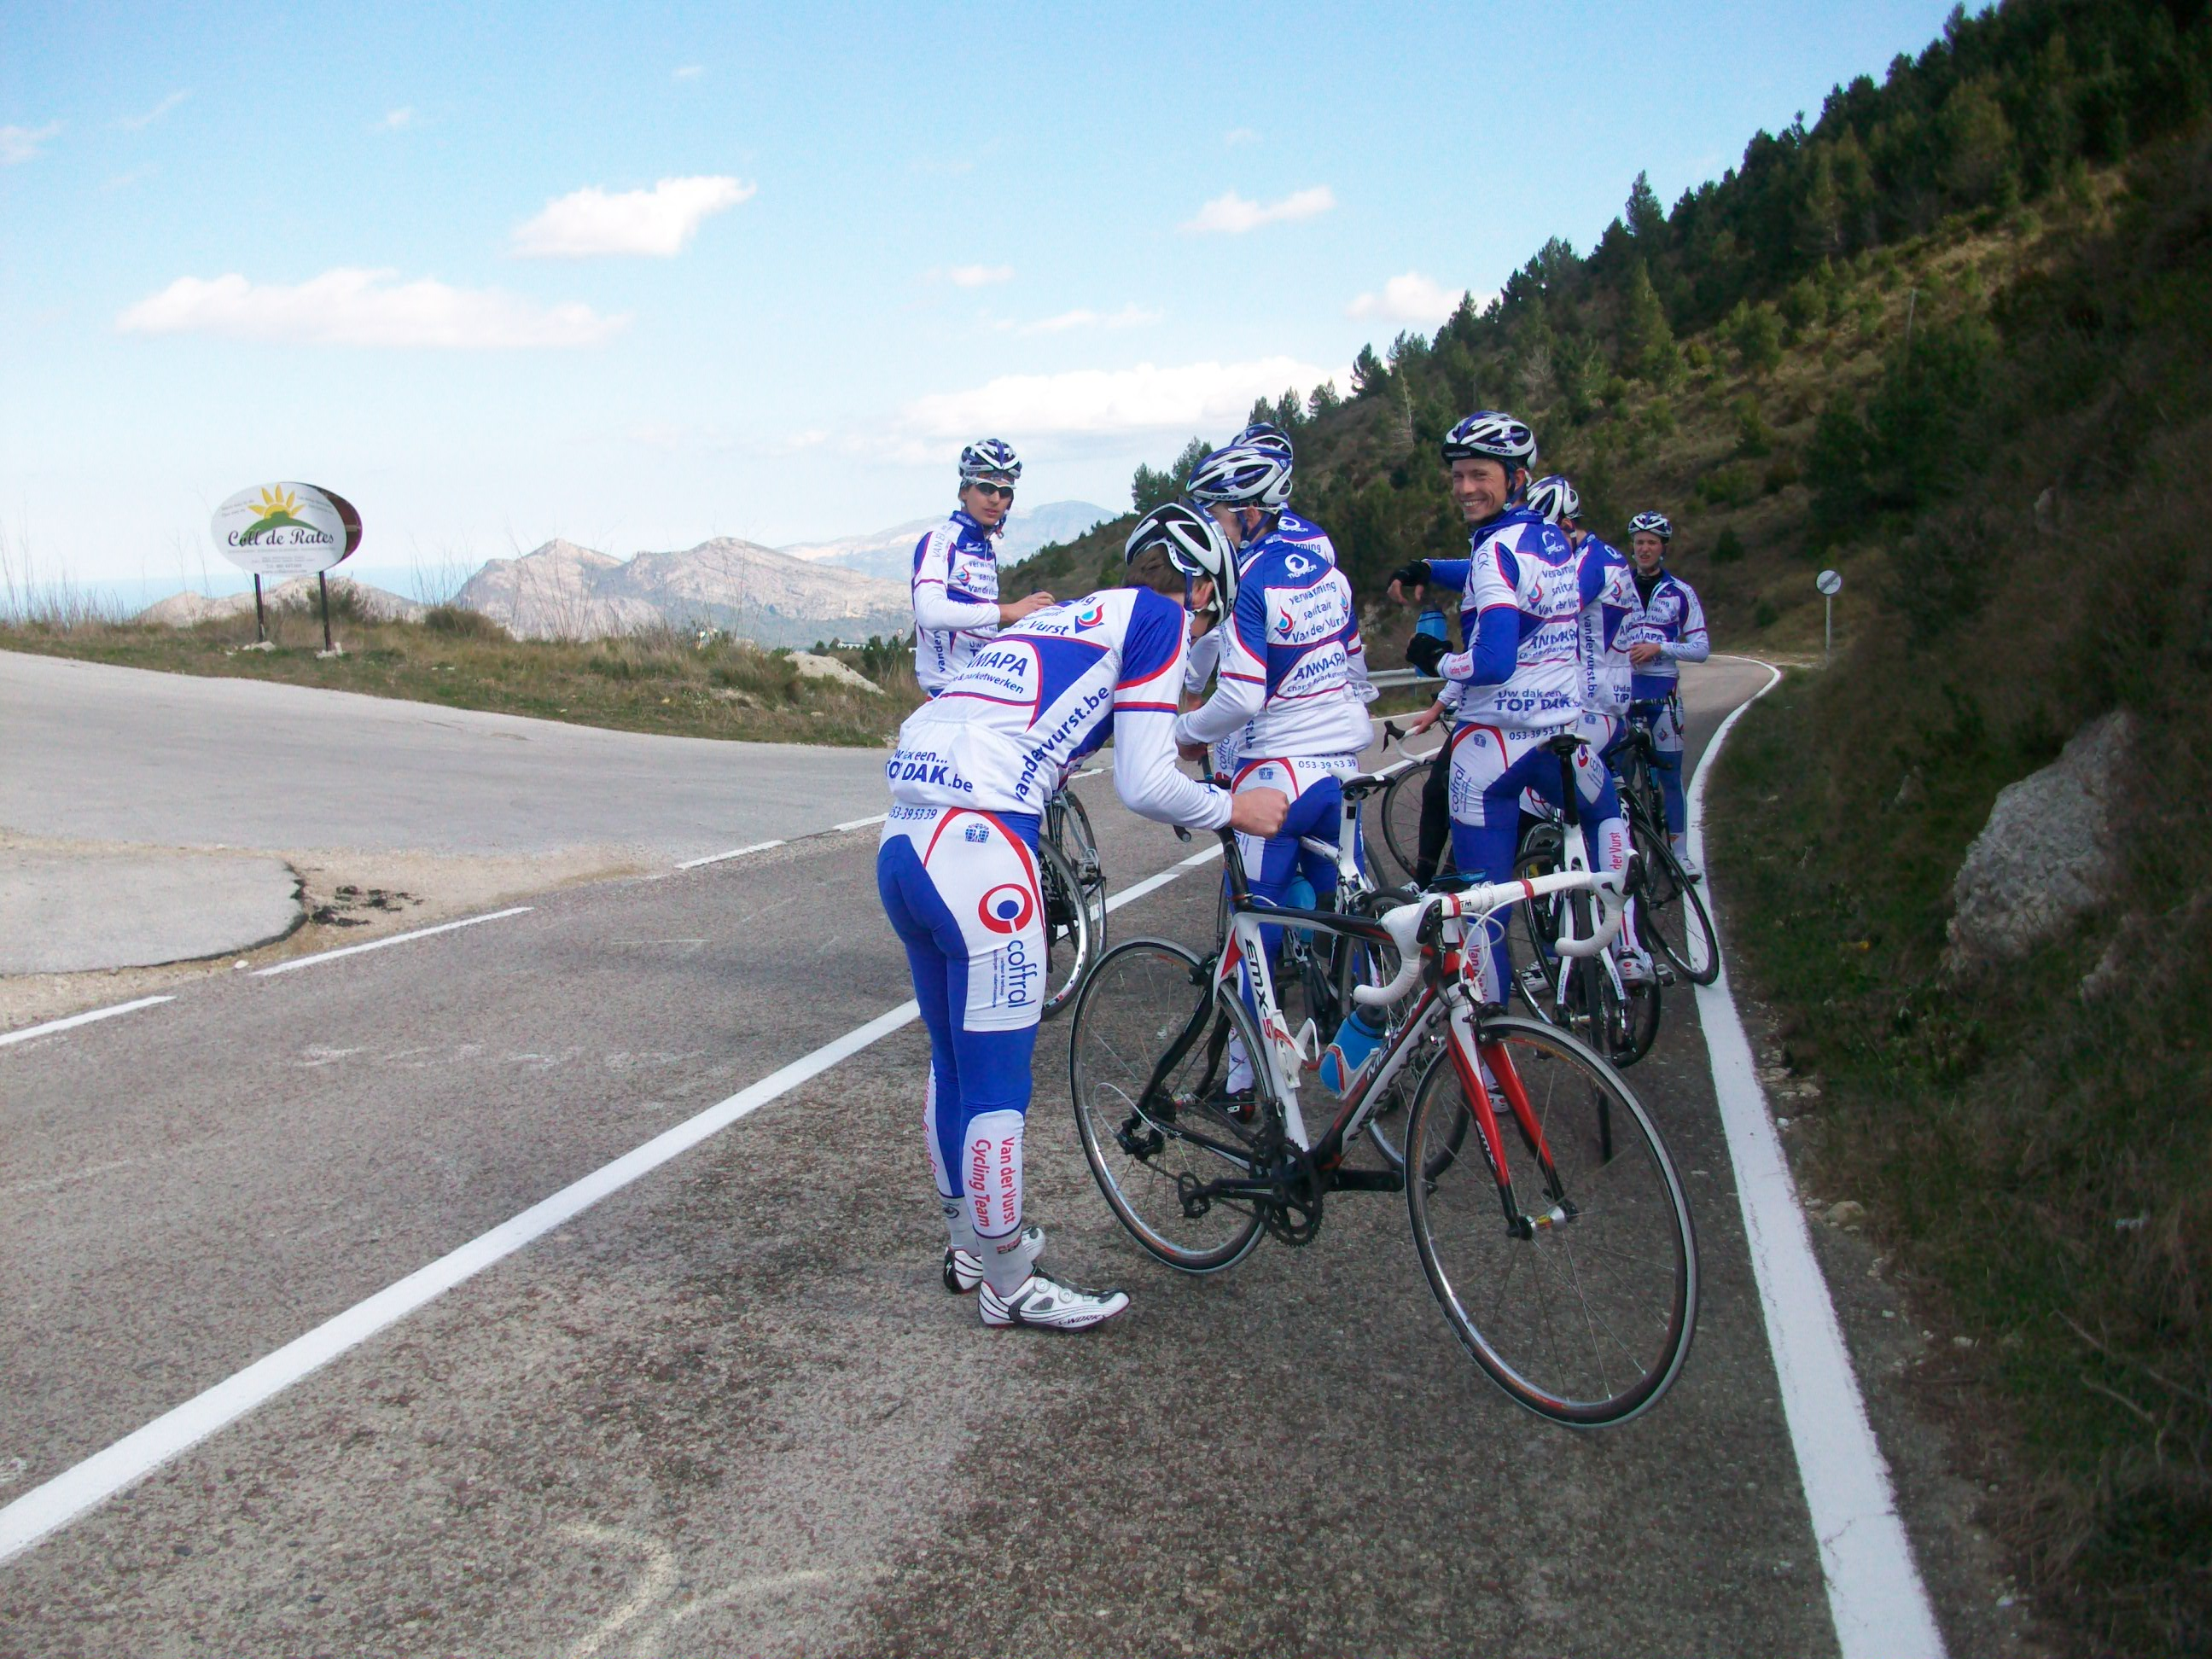 A group of young Belgian cyclists take a break at the top of a mountain pass.